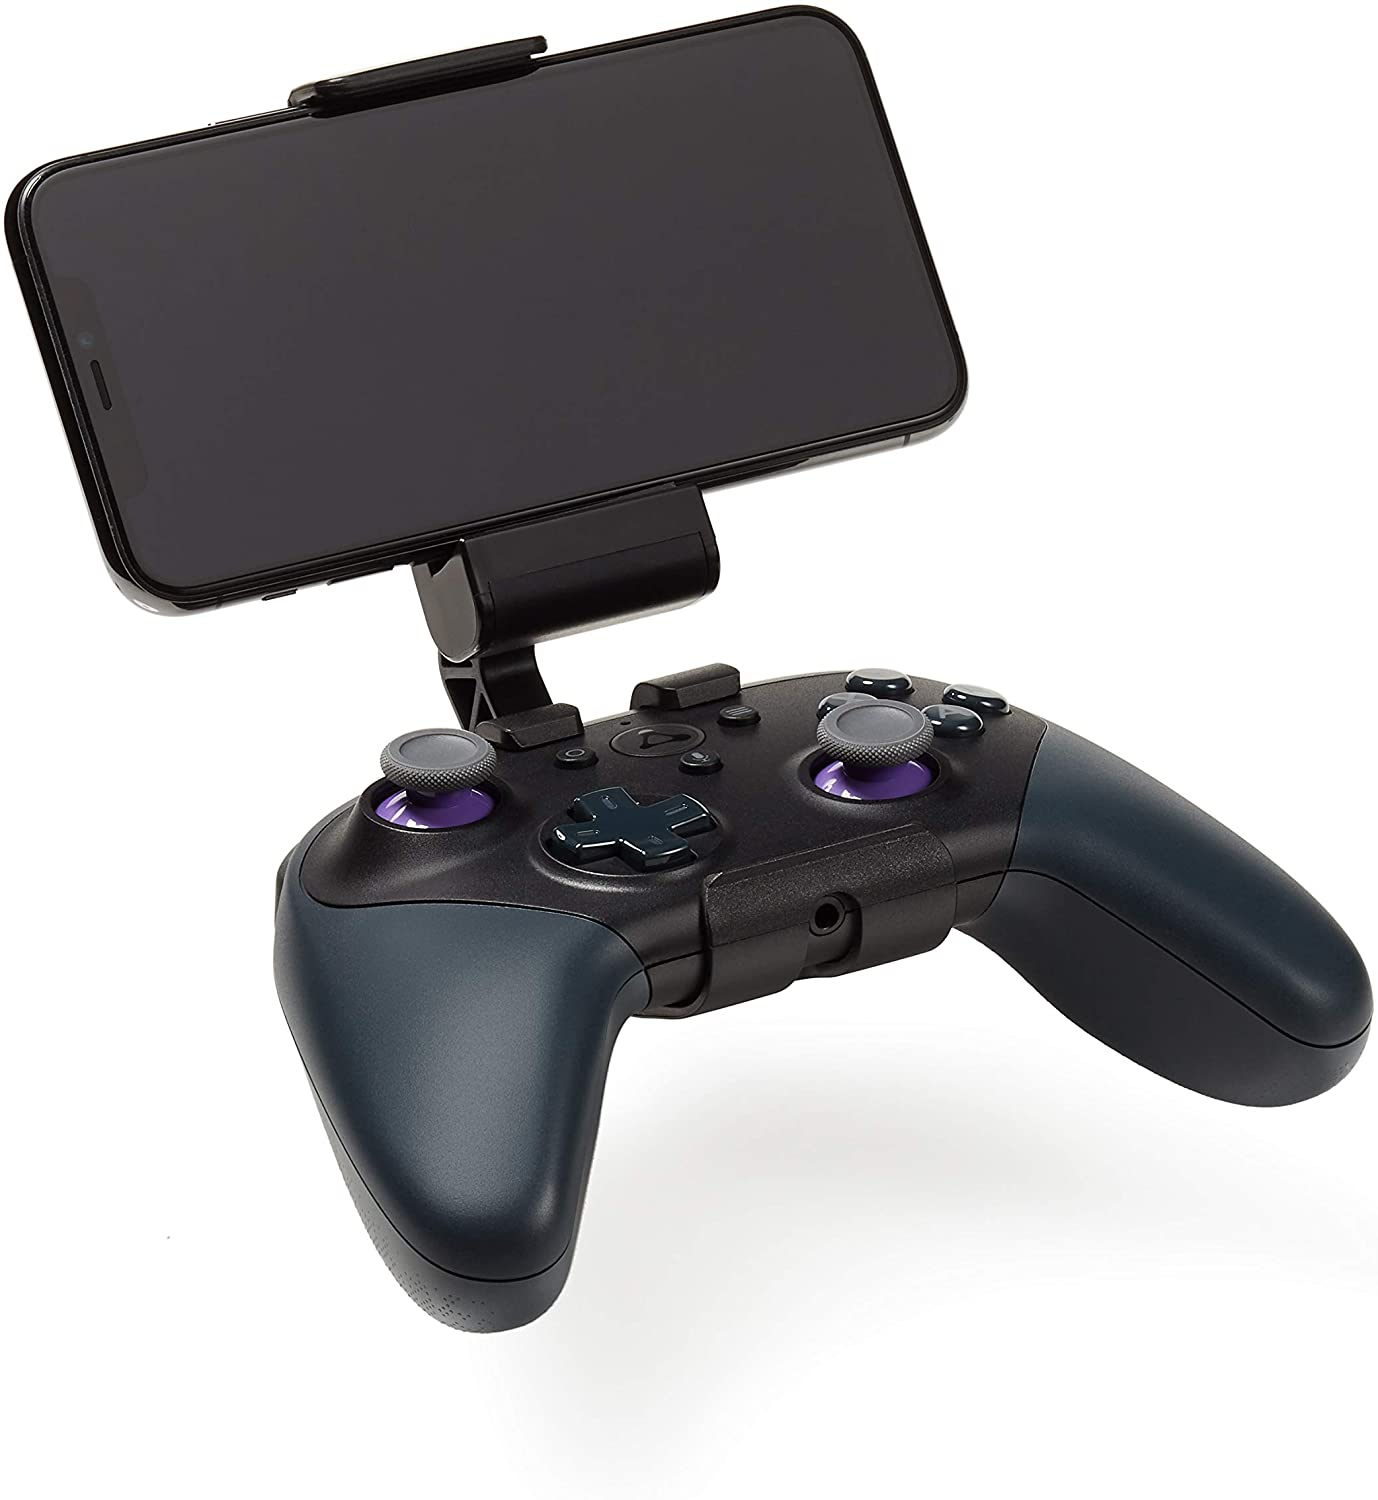 luna controller with phone clip